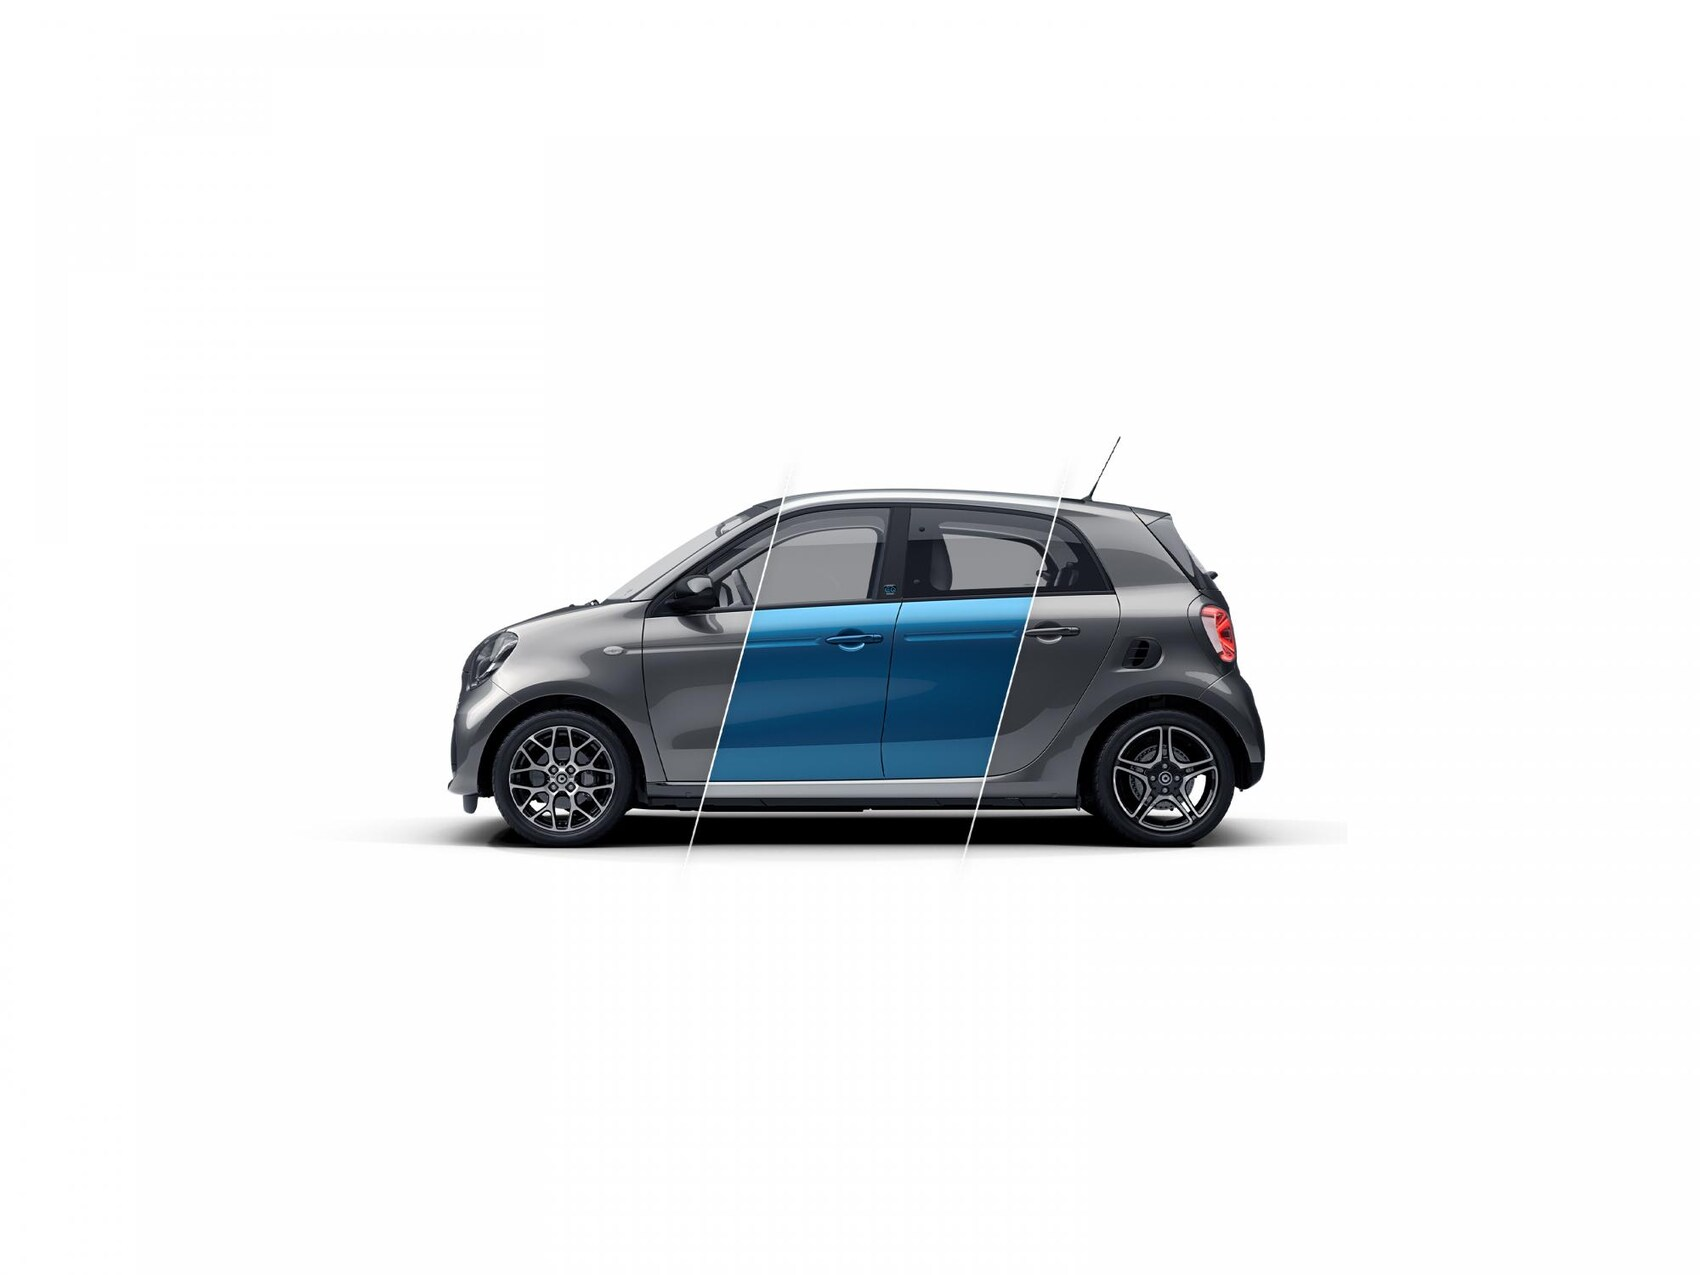 SSP FACELIFT smart eq forfour